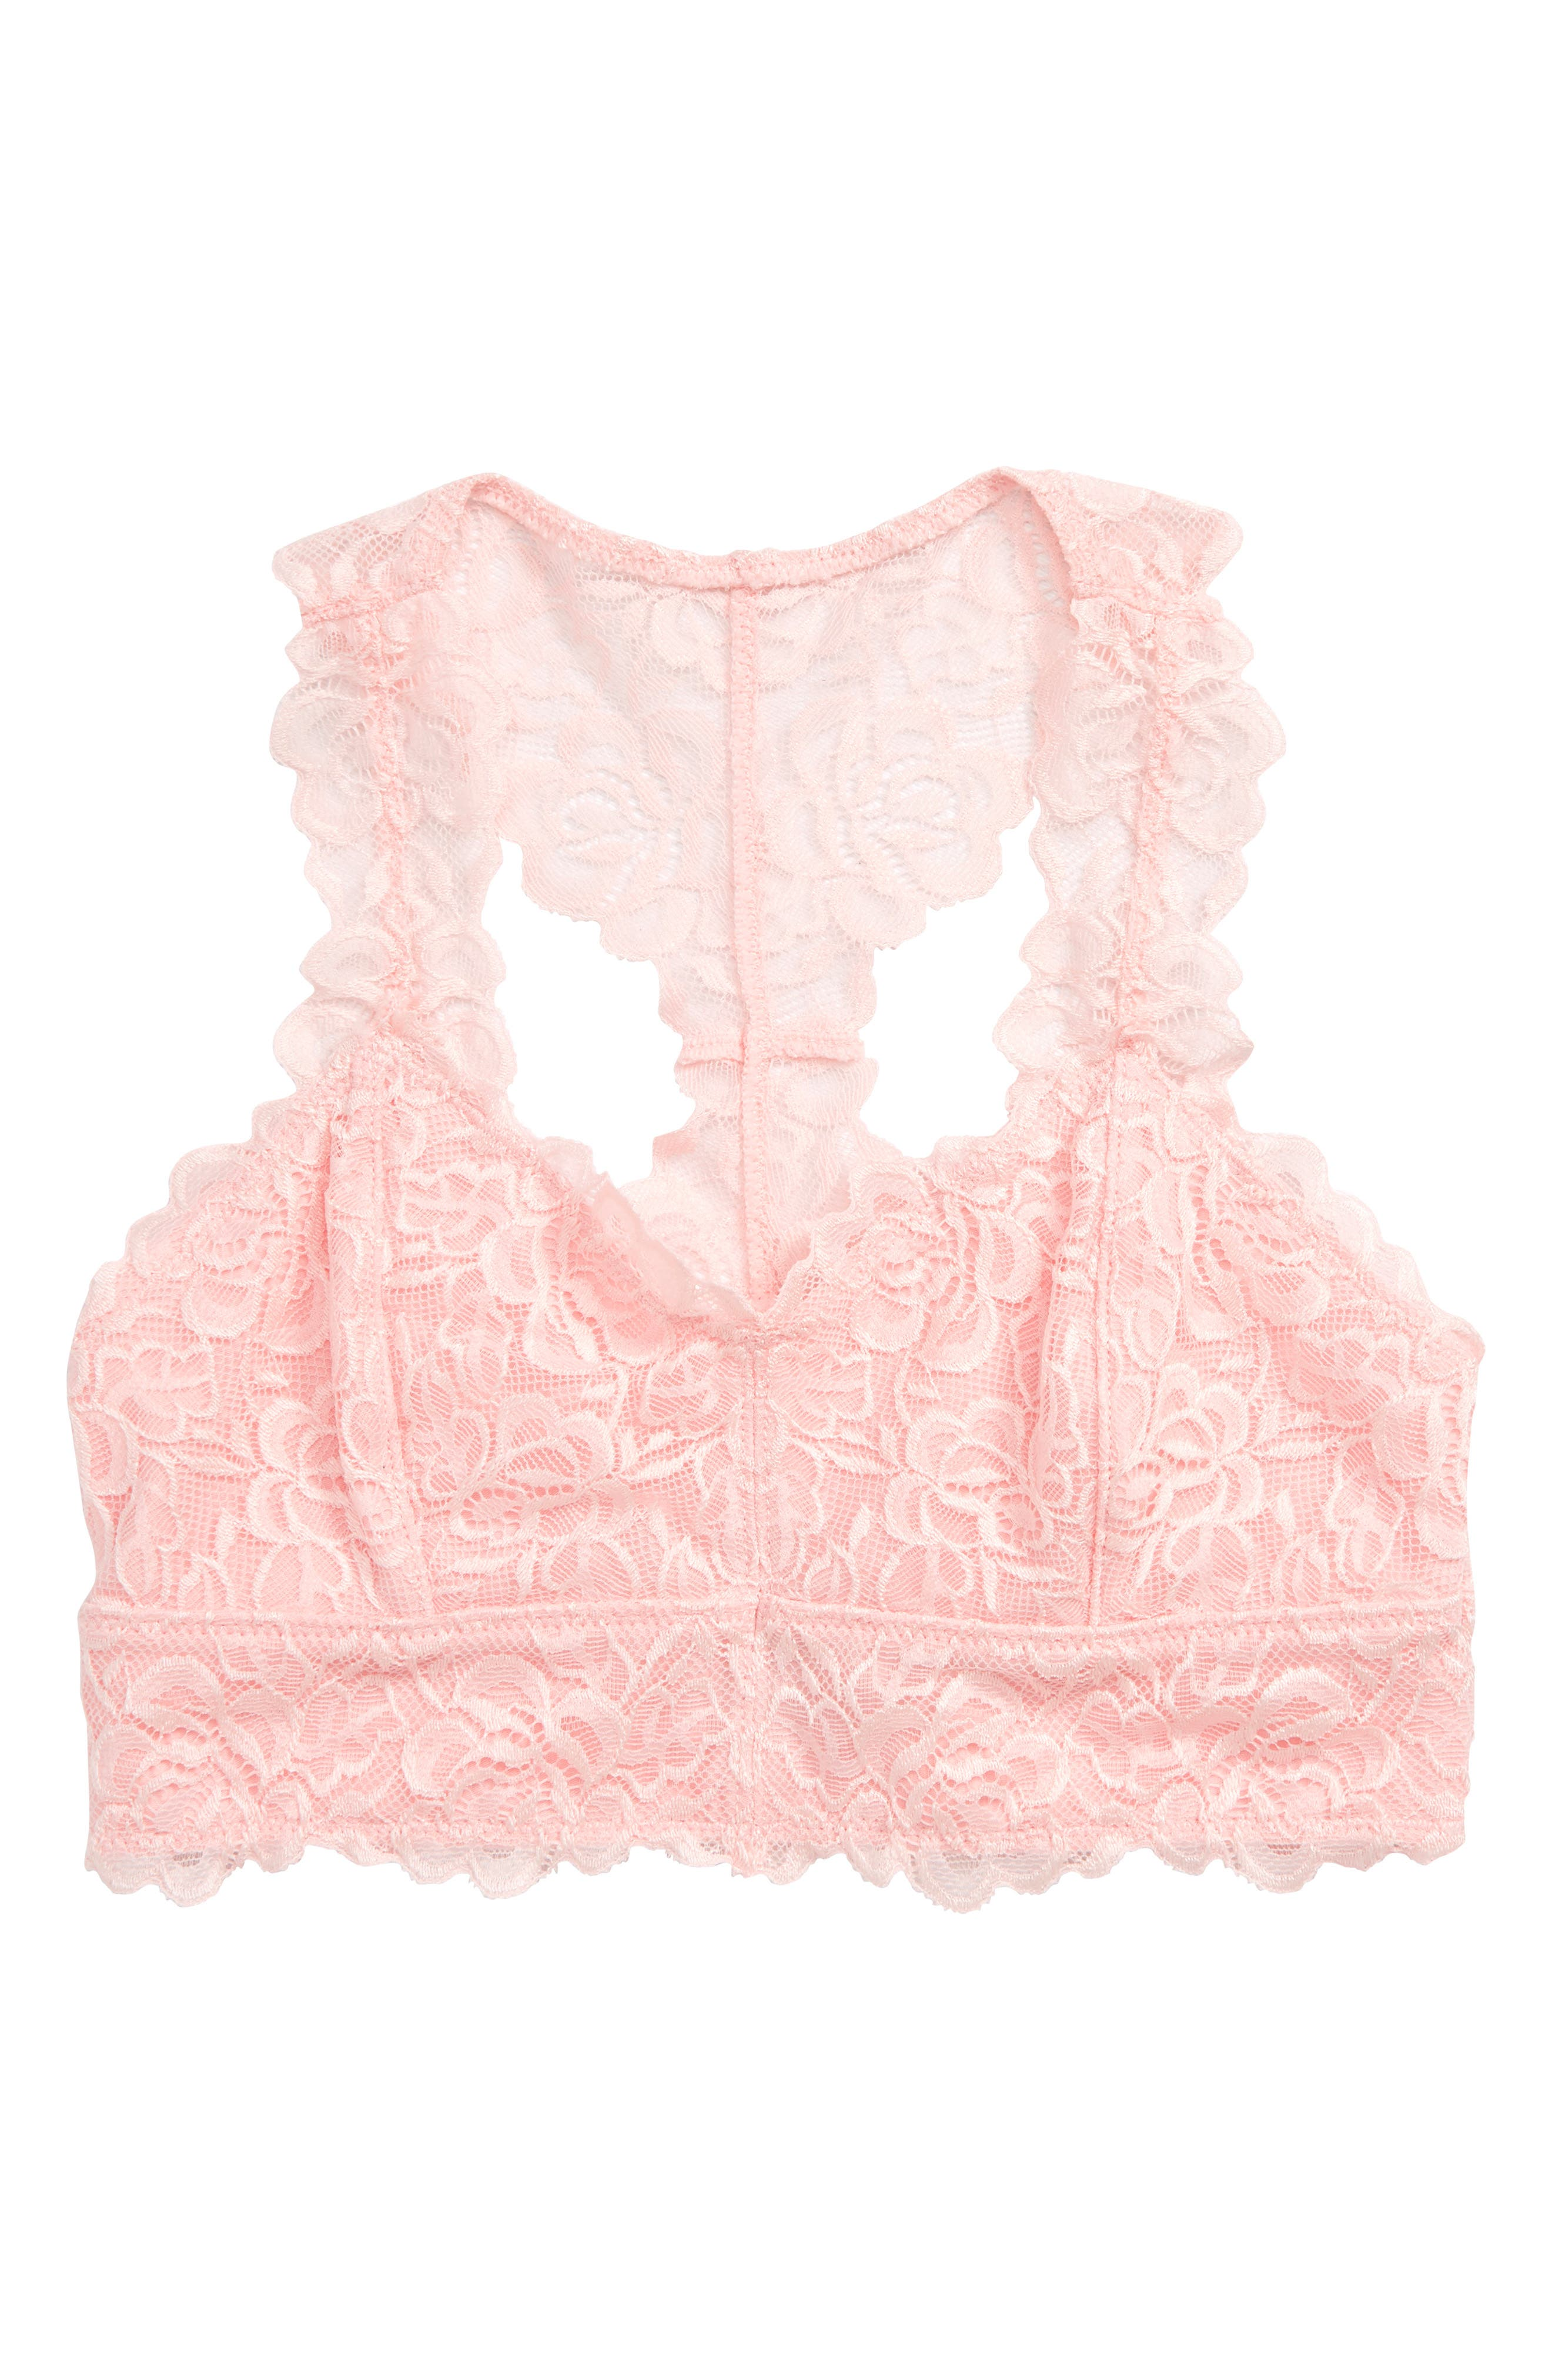 TUCKER + TATE, Lace Bralette, Main thumbnail 1, color, PINK BABY